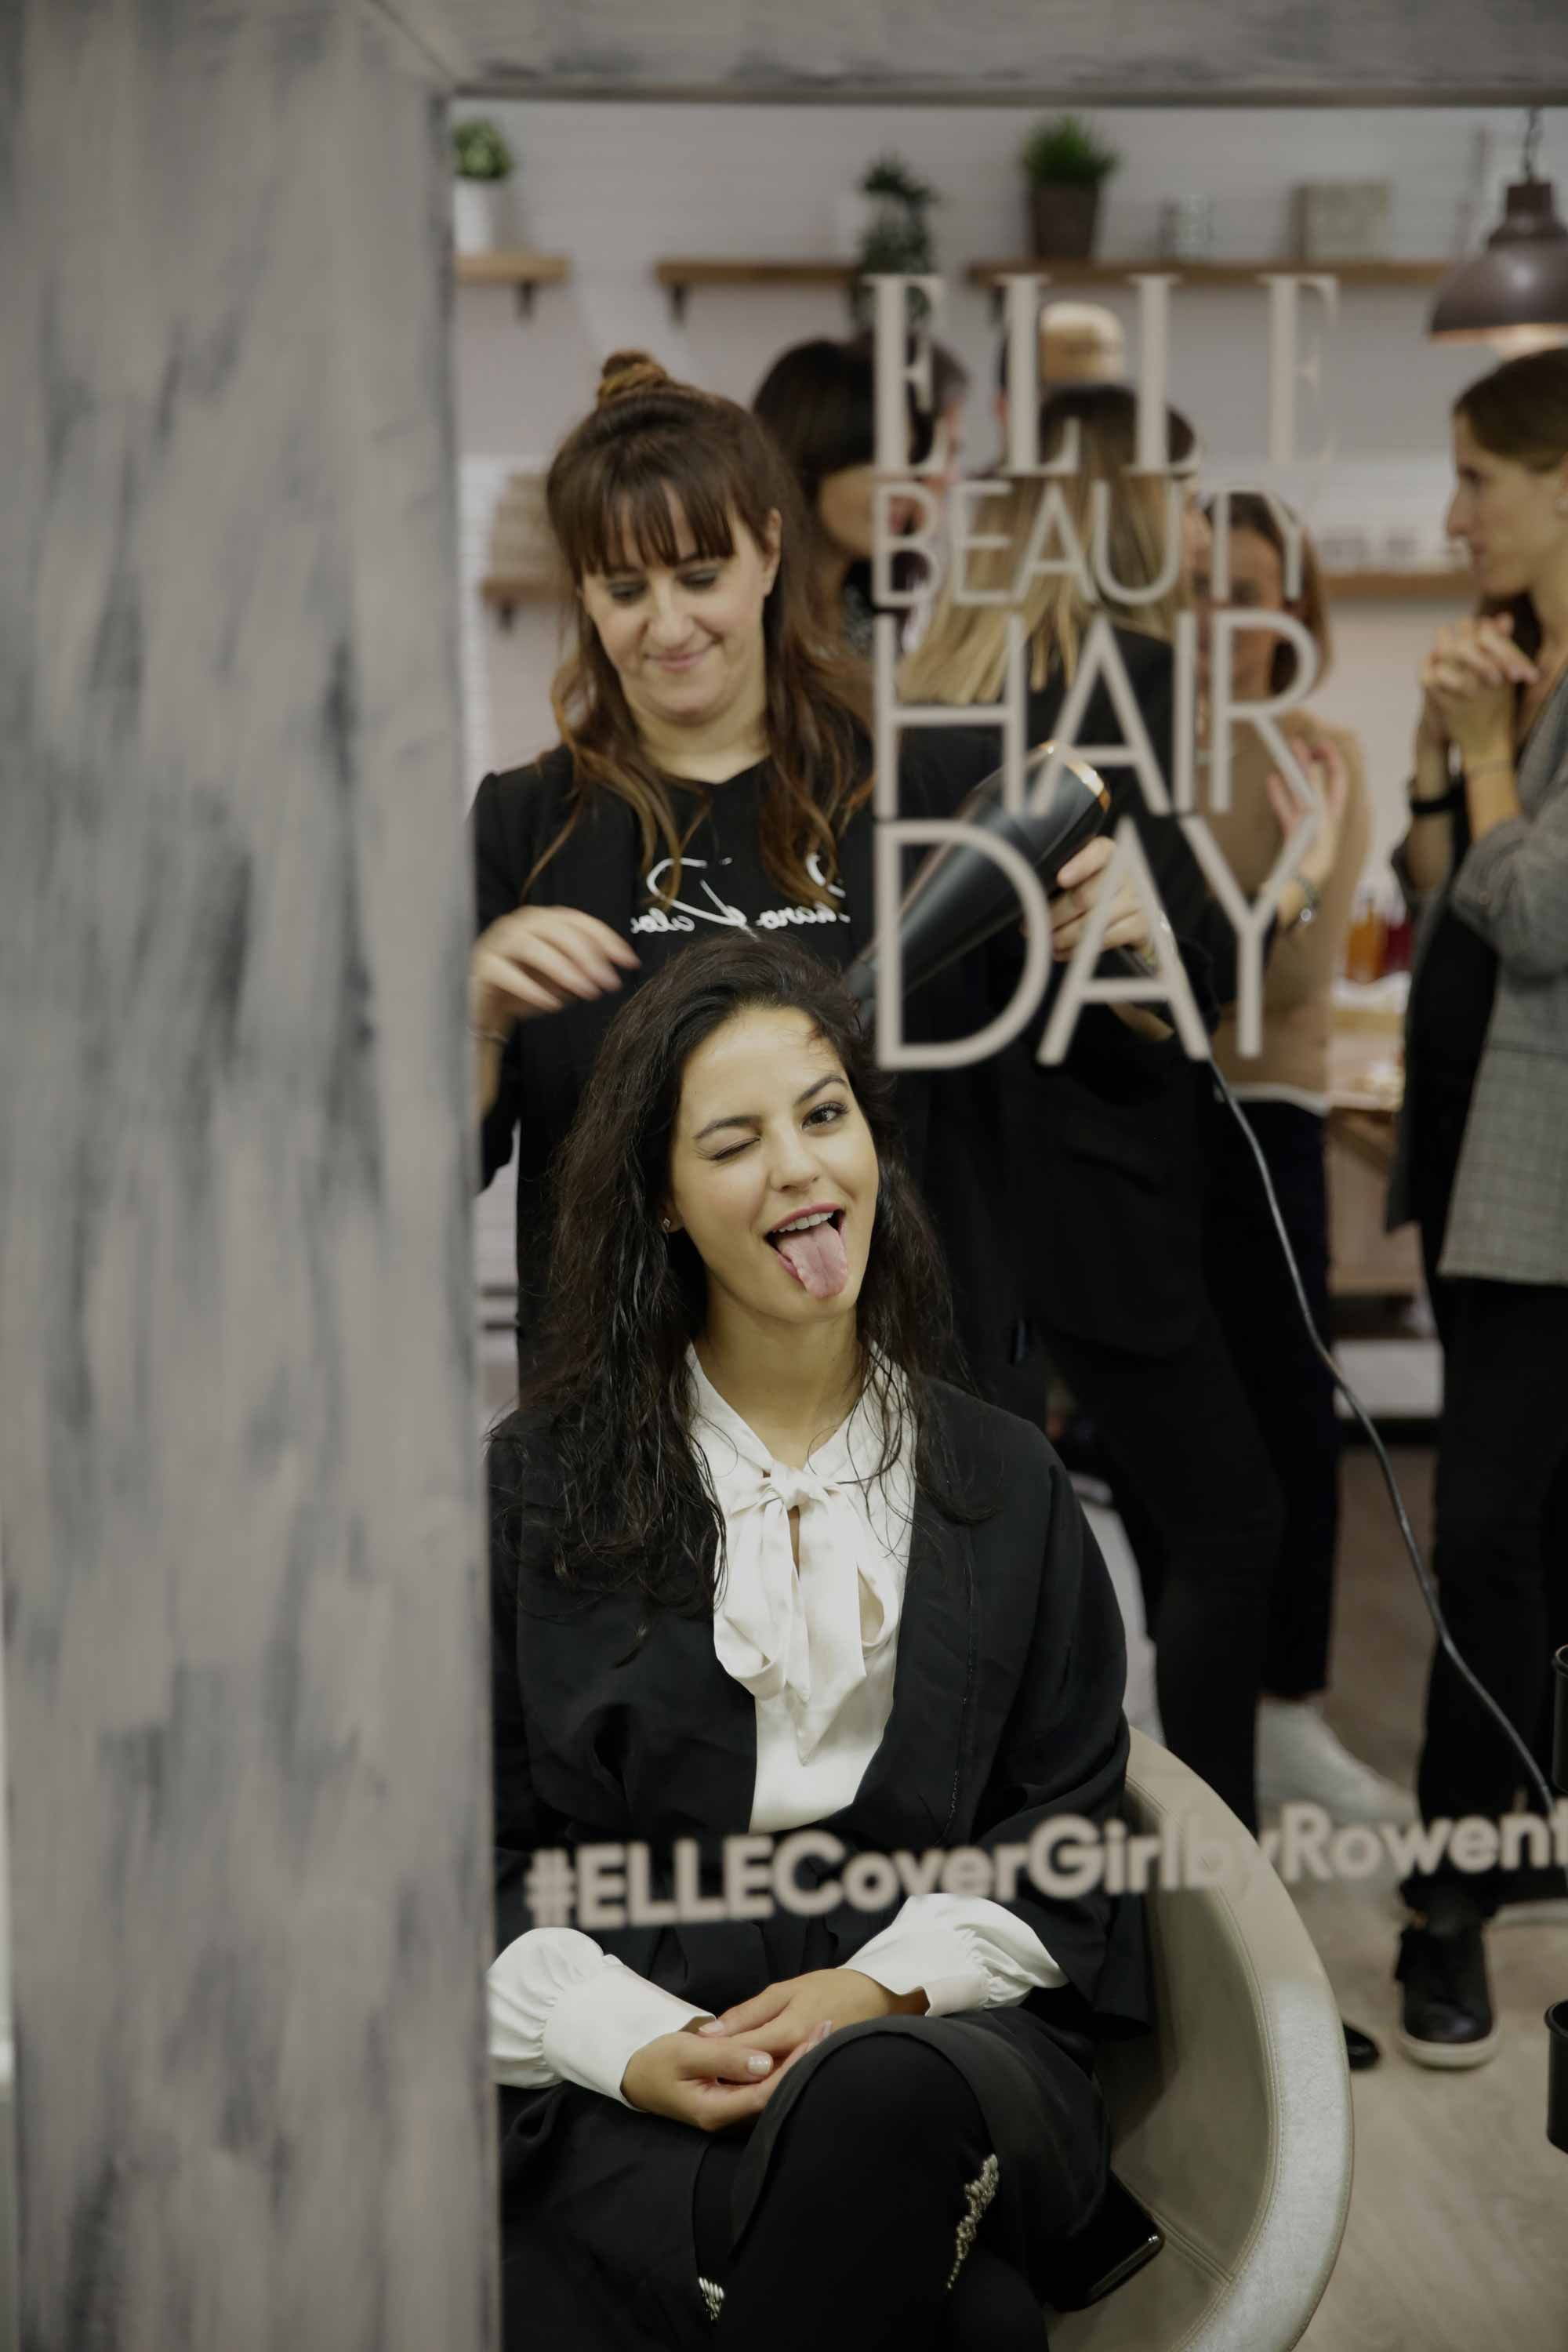 Elle Beauty Hair Day by Rowenta